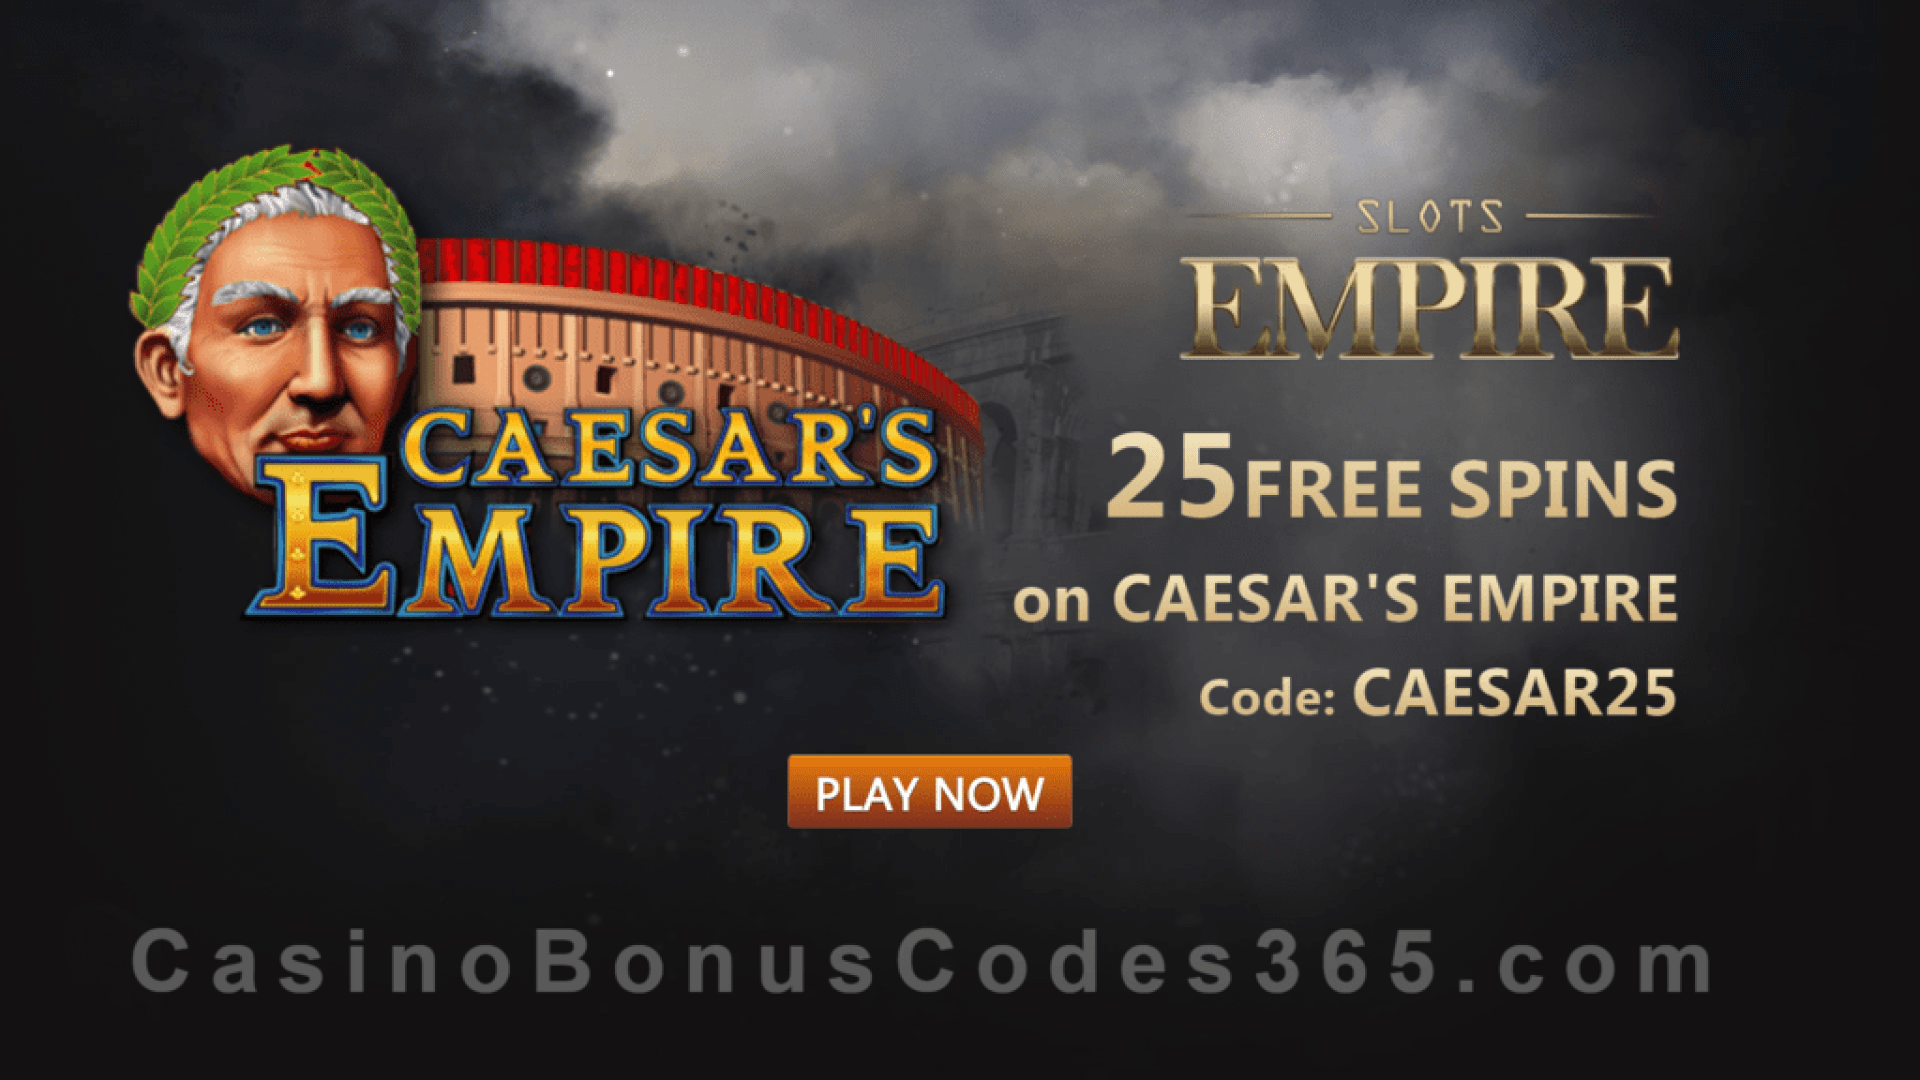 Slots Empire 25 FREE Spins on RTG Caesar's Empire Exclusive Deal